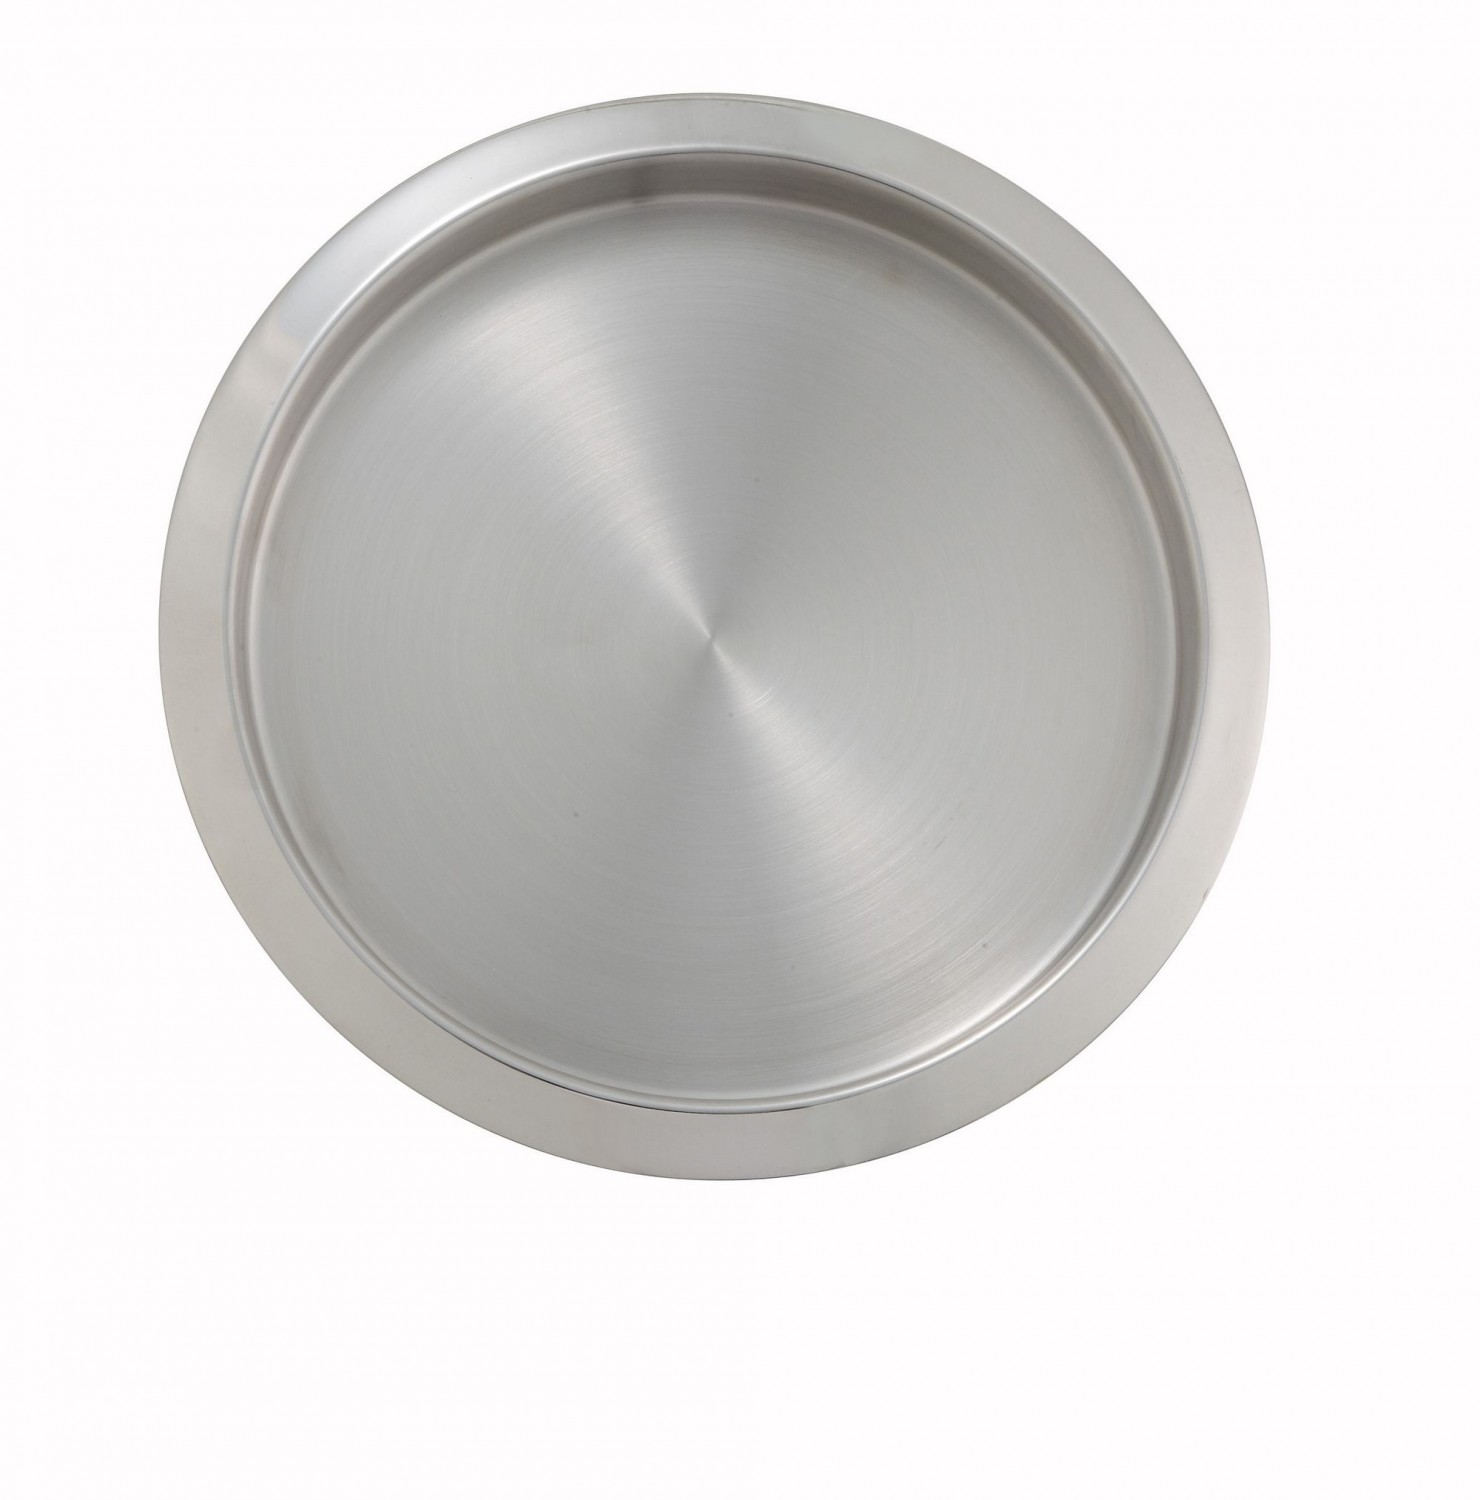 Winco SBT-11 Round Stainless Steel Service Bar Tray 11""